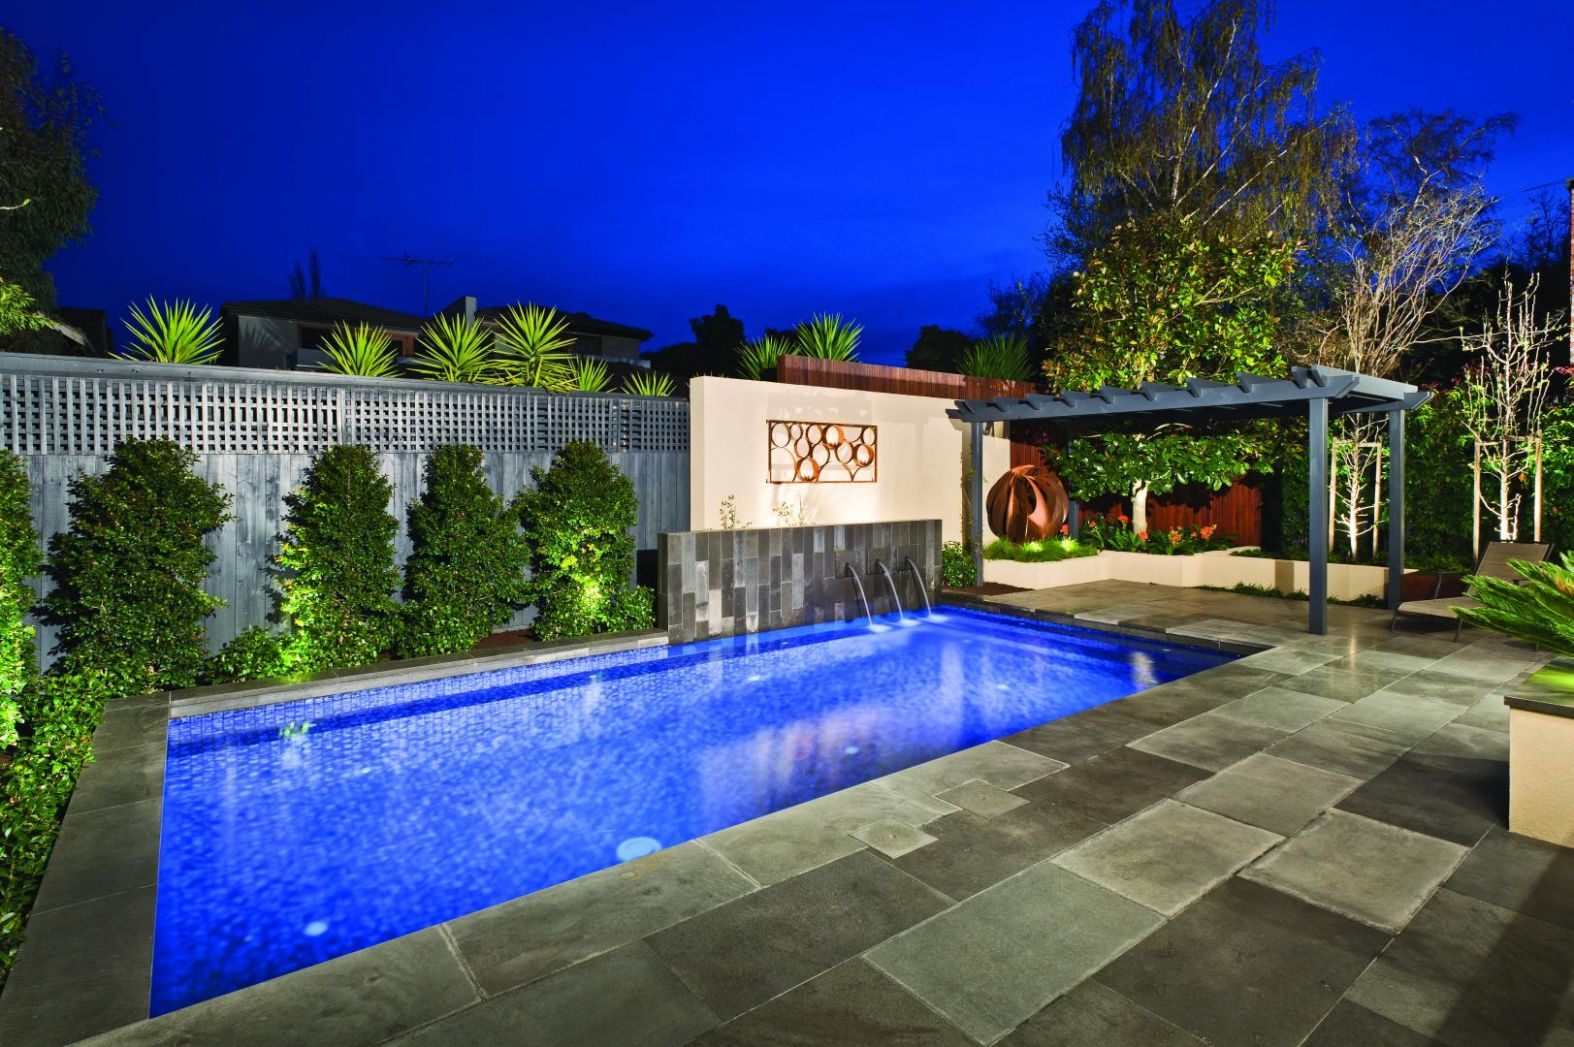 Pool Landscaping Ideas Melbourne On A Budget Inground Home ...